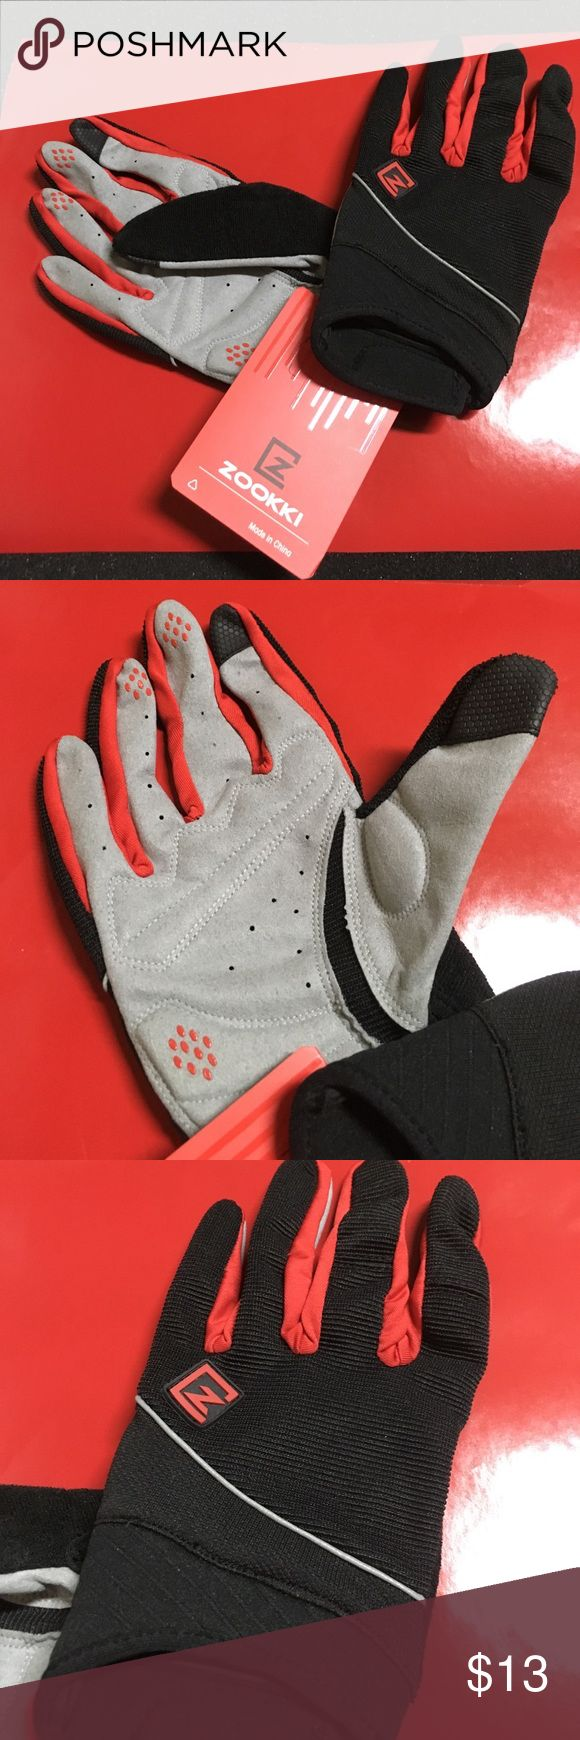 🆕 Zookki Cycling Gloves Better grip, absorbs shock. 💯 Brand Authentic 🖲 Use offer button to negotiate.                          ✅ Bundle for discount Zookki Other